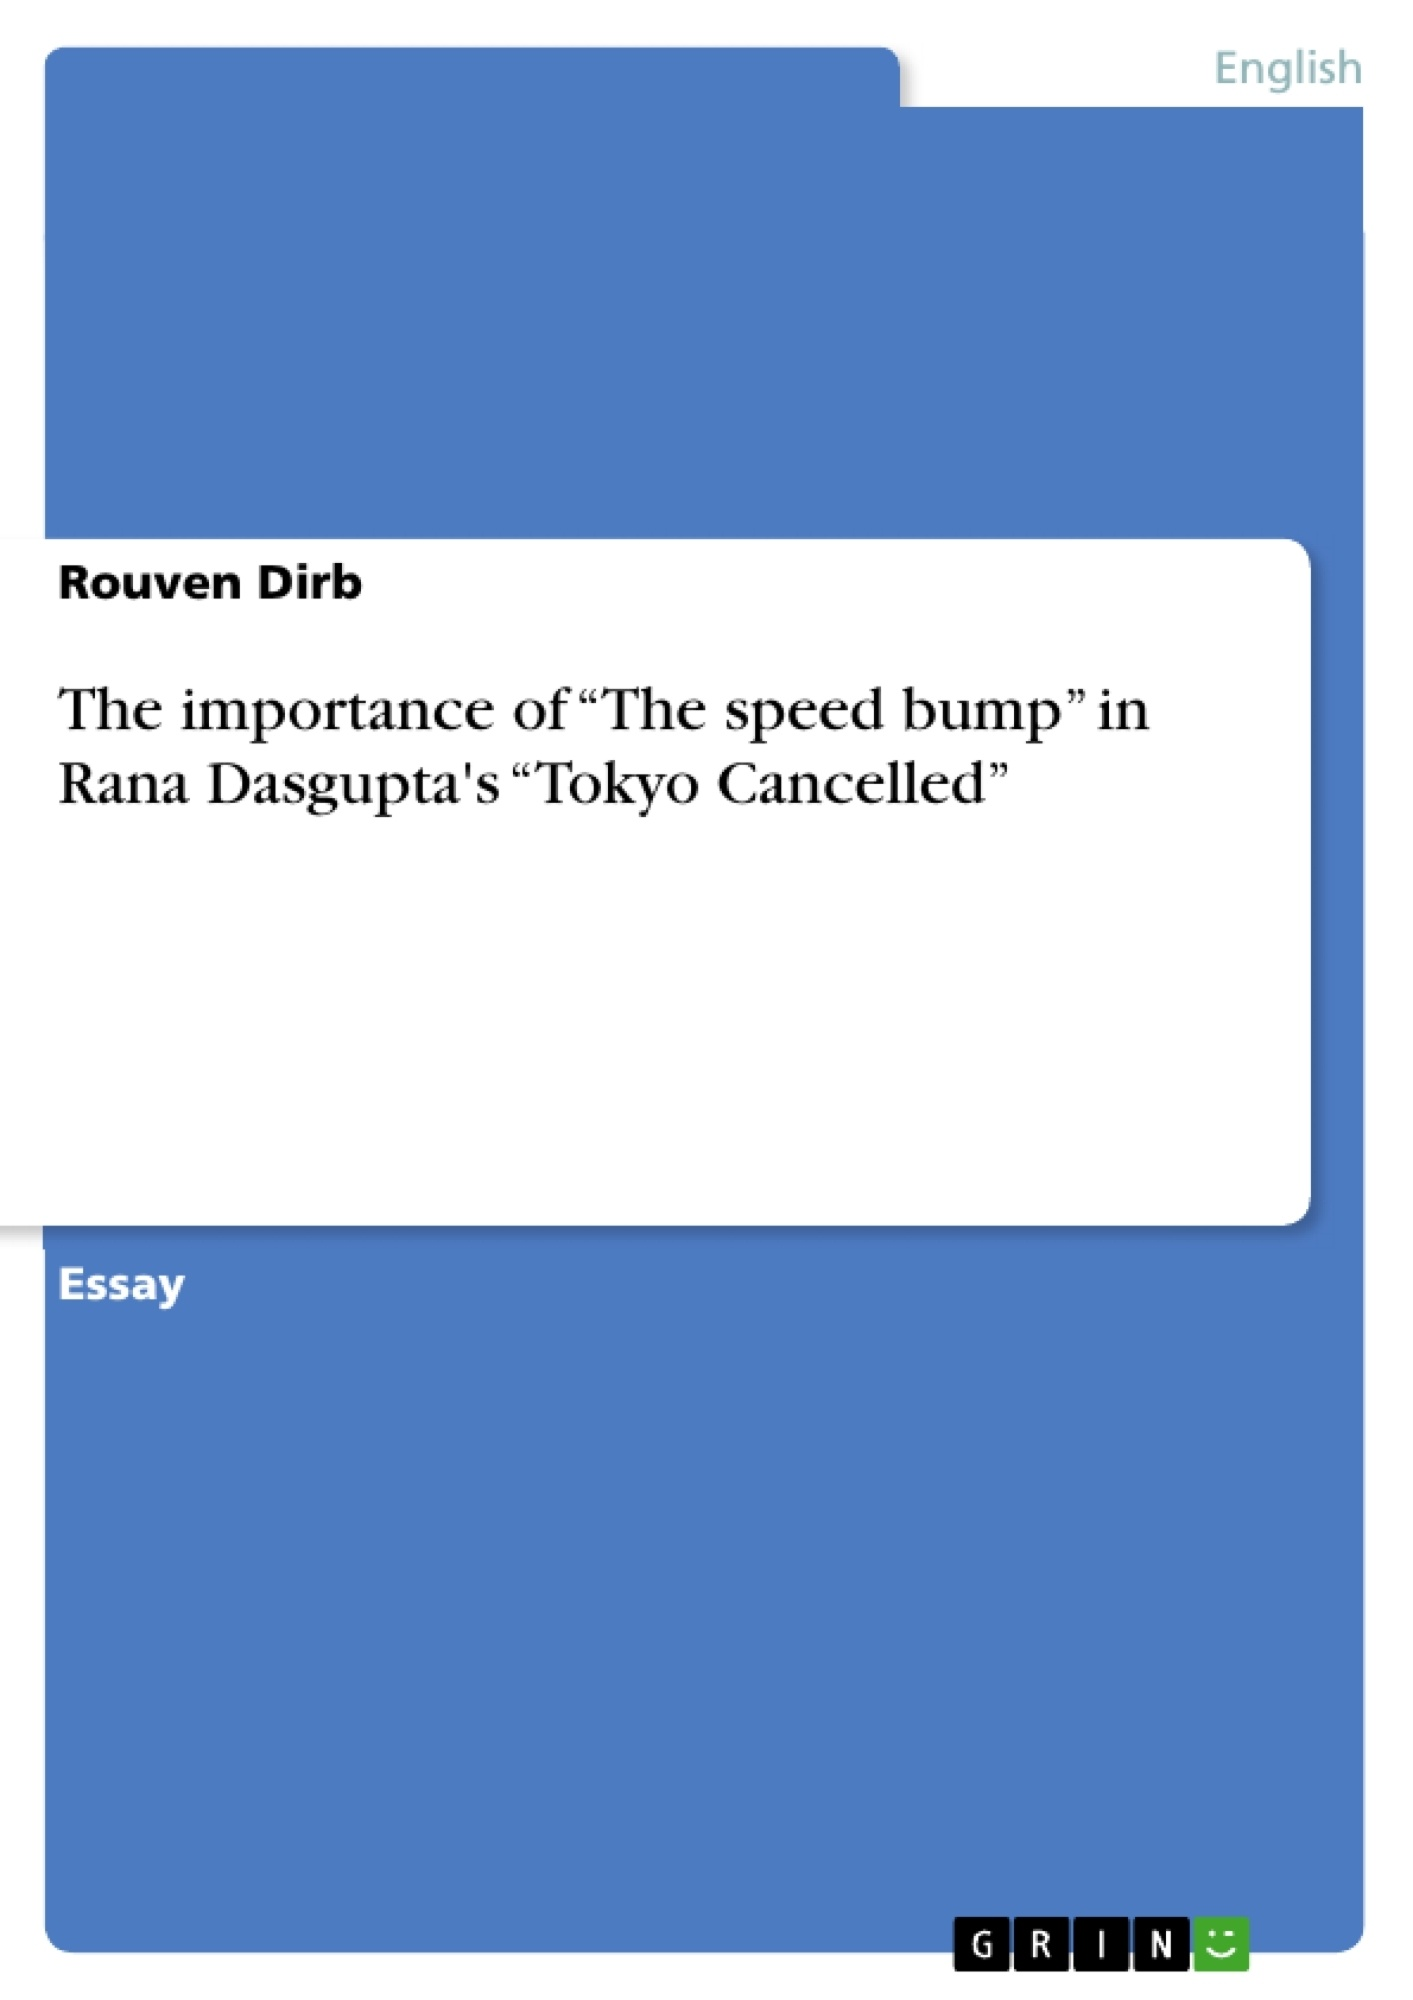 """Title: The importance of """"The speed bump"""" in Rana Dasgupta's """"Tokyo Cancelled"""""""